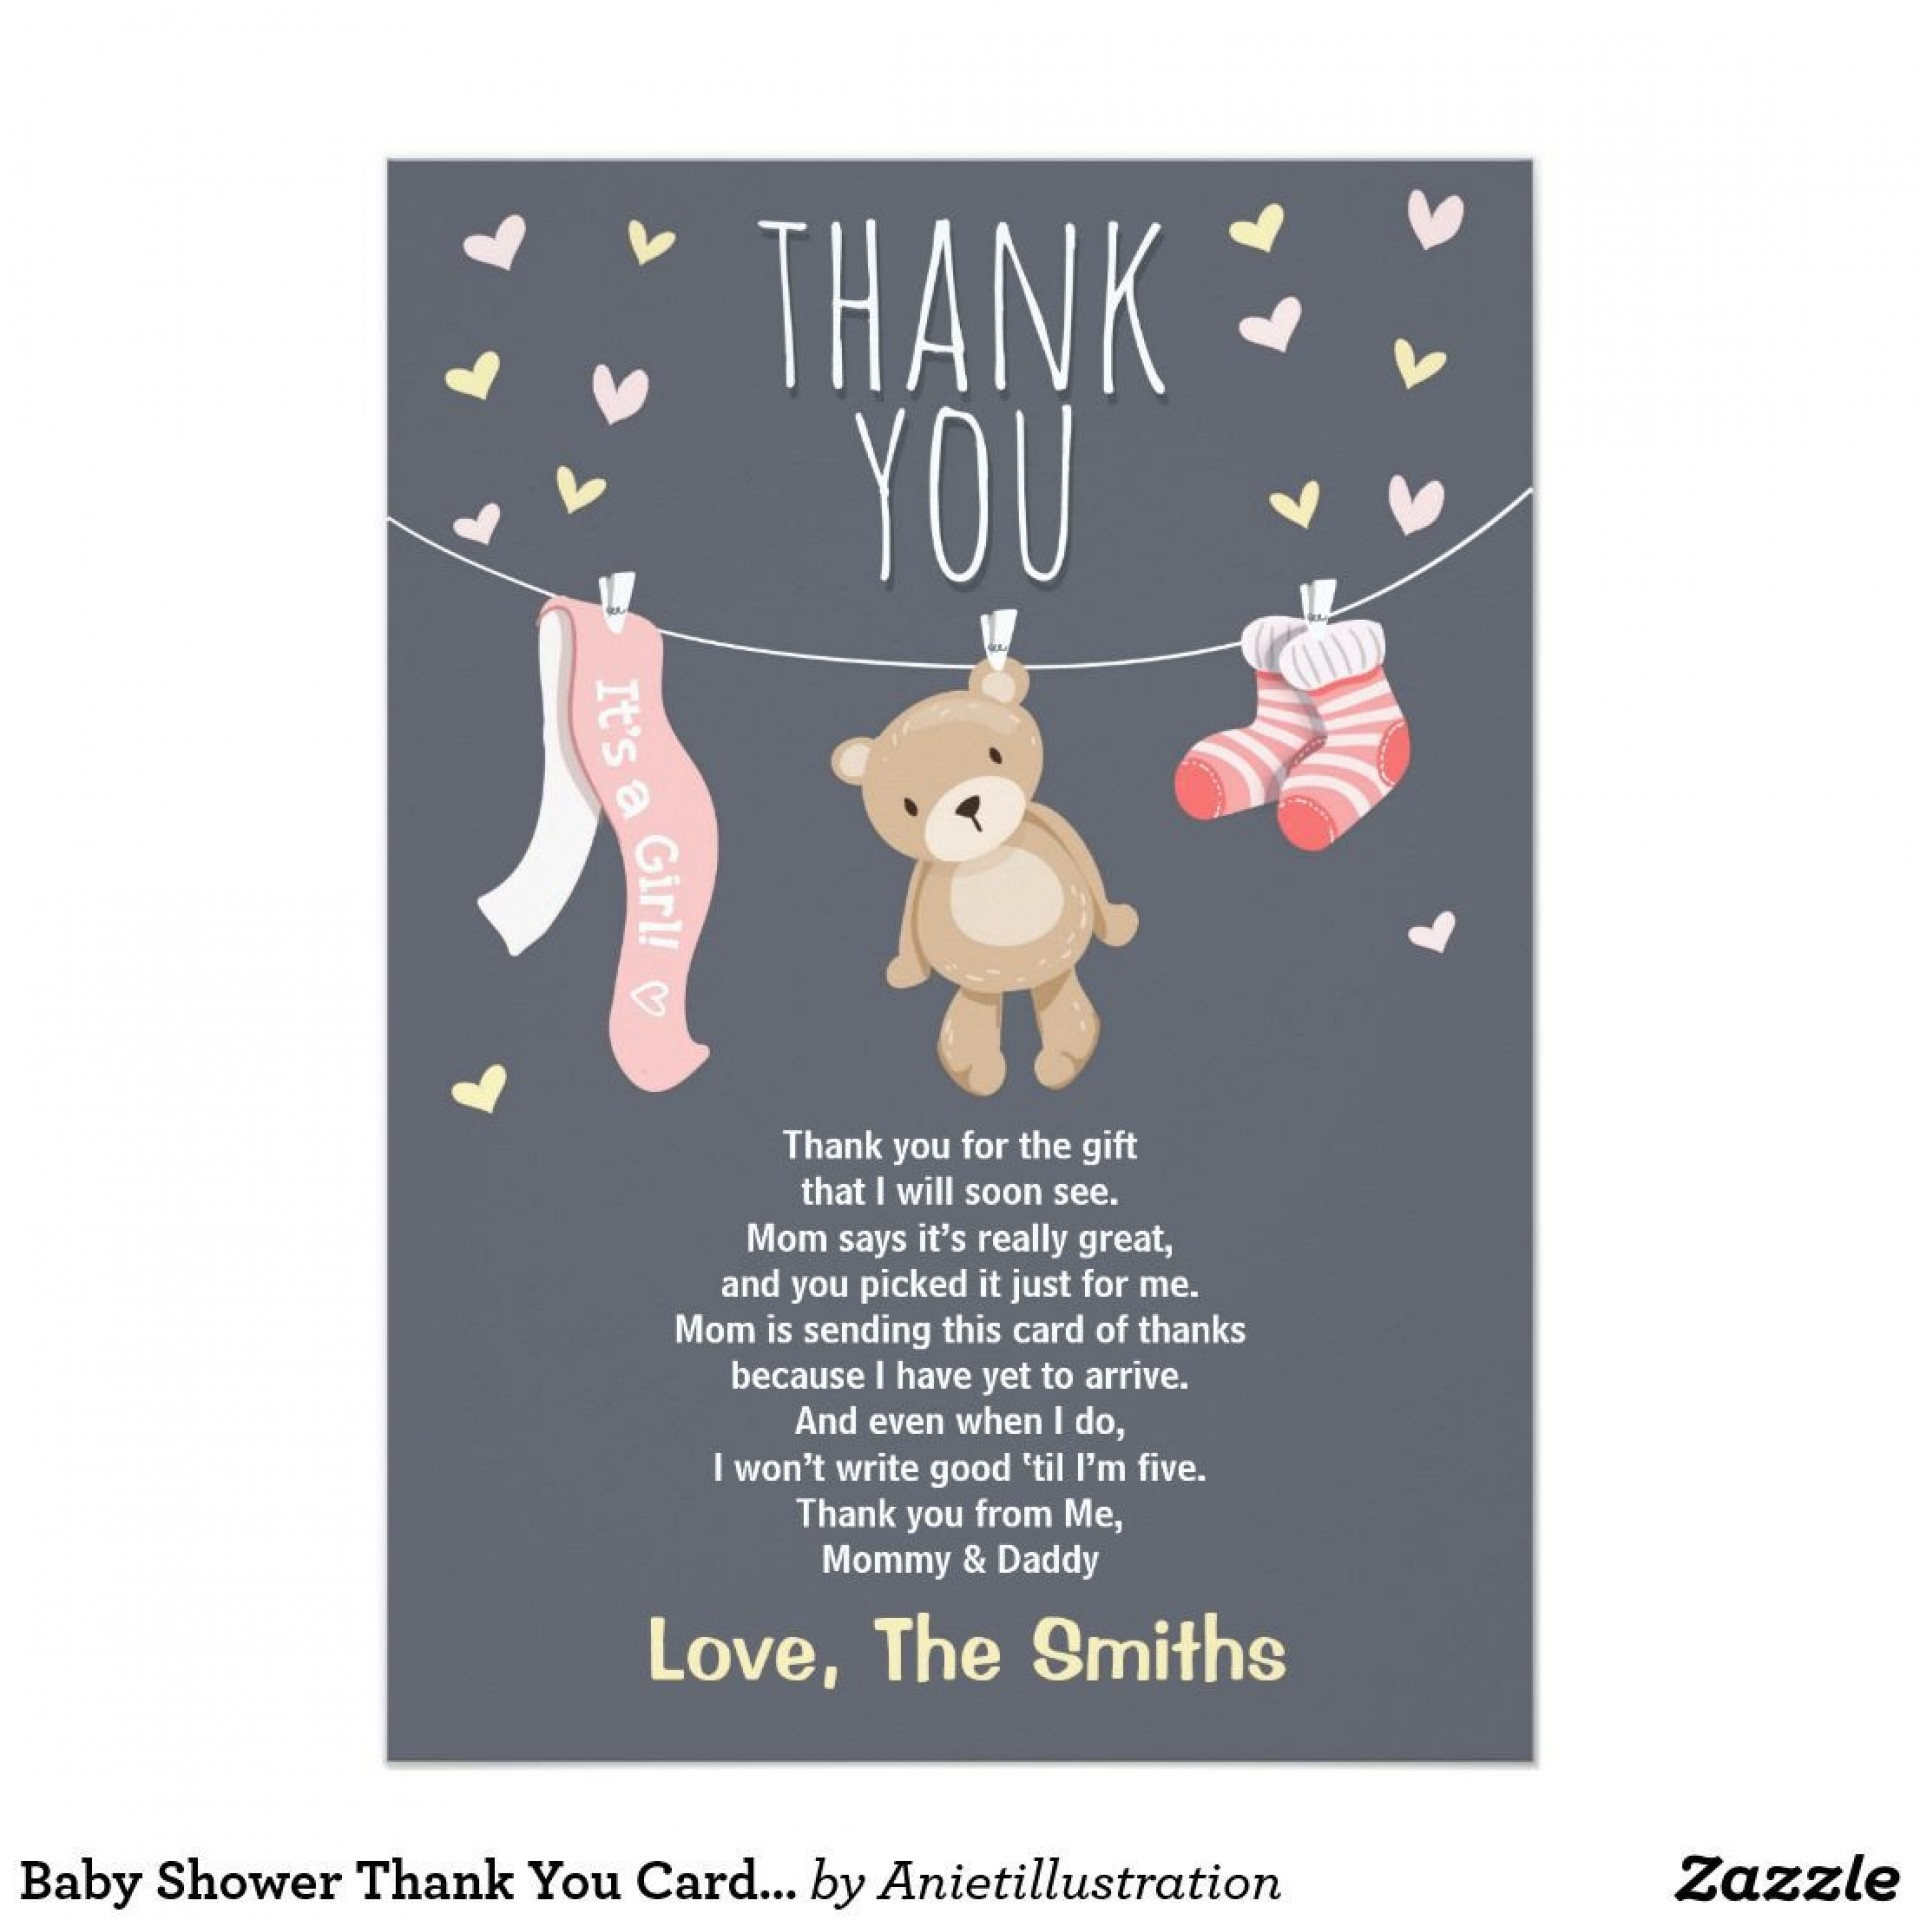 004 Stirring Thank You Card Wording Baby Shower Design  Note For Money Someone Who Didn't Attend Hostes1920